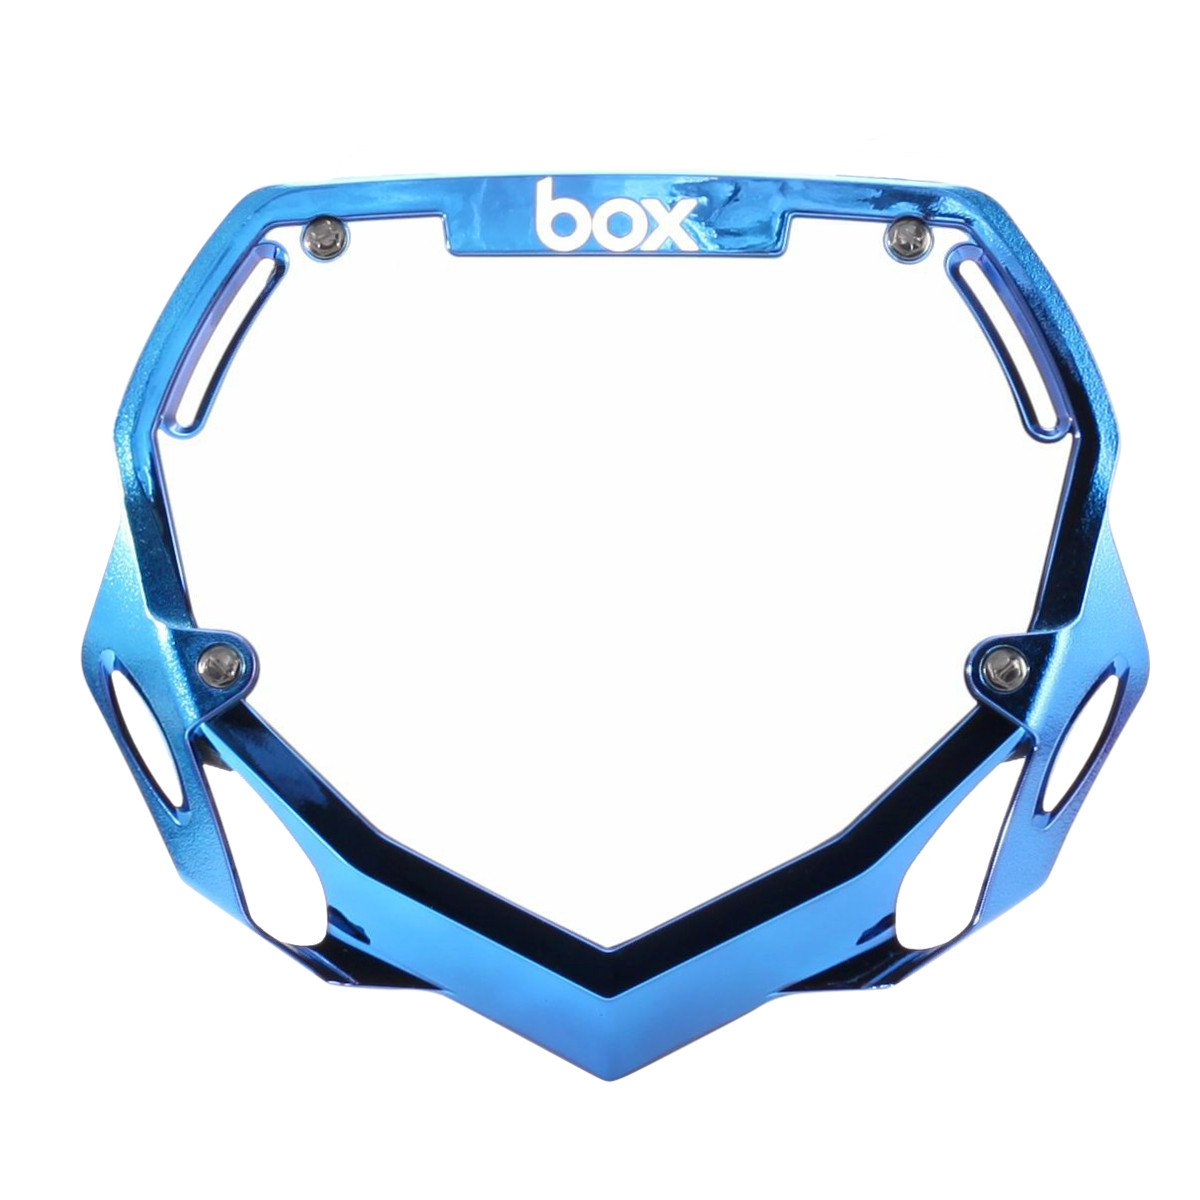 Box Two Pro BMX Number Plate - Blue Chrome + White